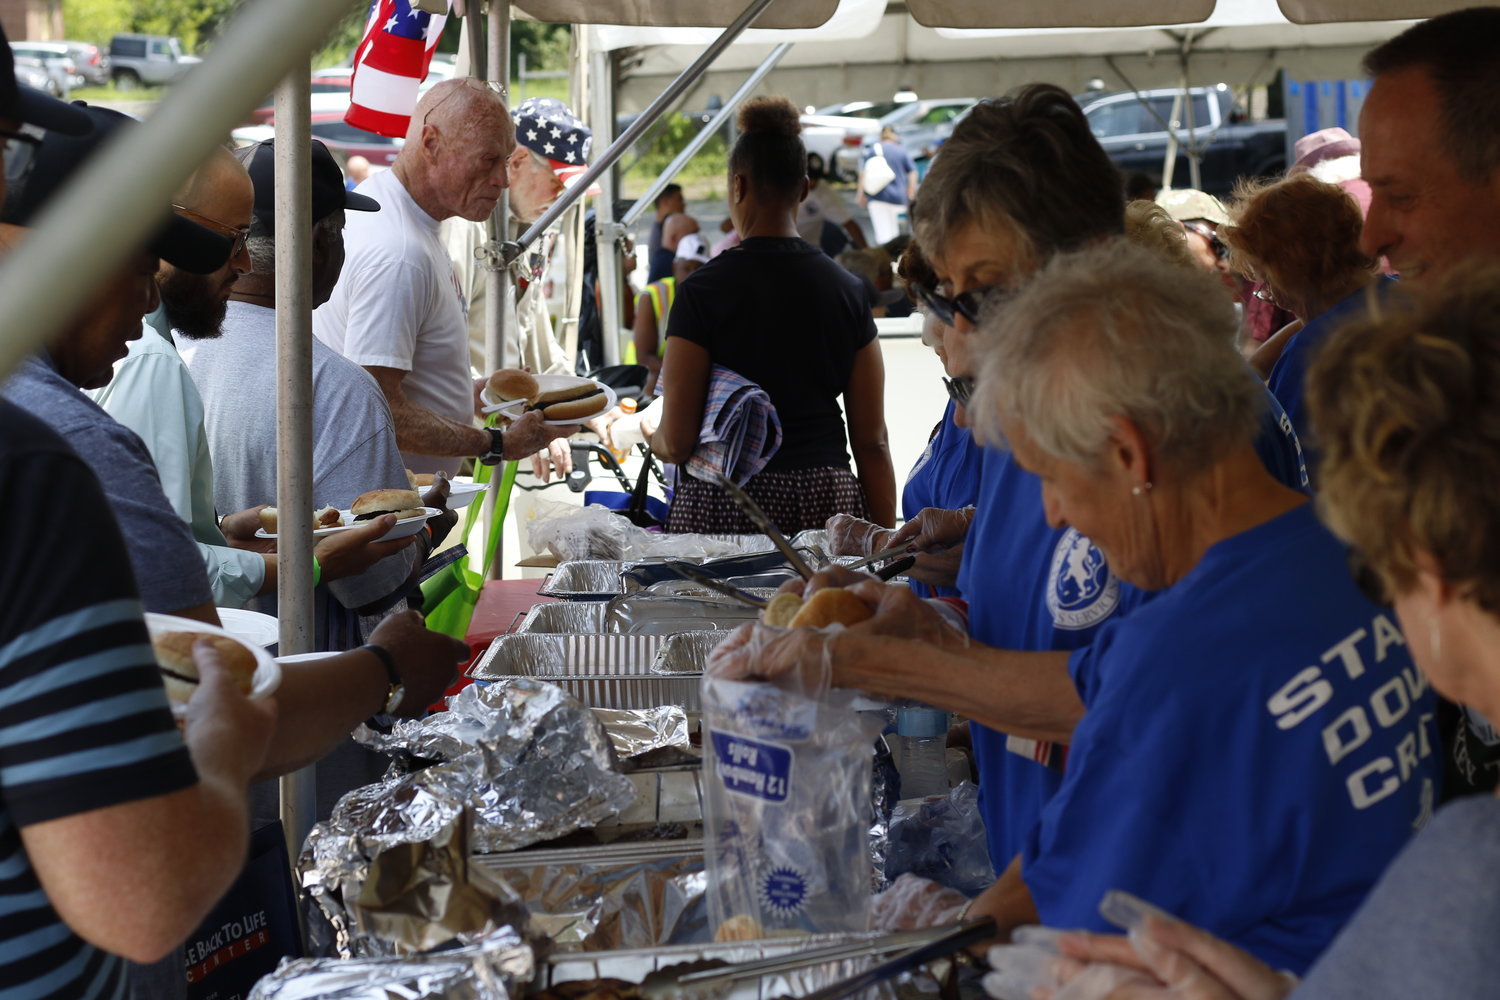 A barbecue was staffed by volunteers who called themselves the Stand Down Crew.